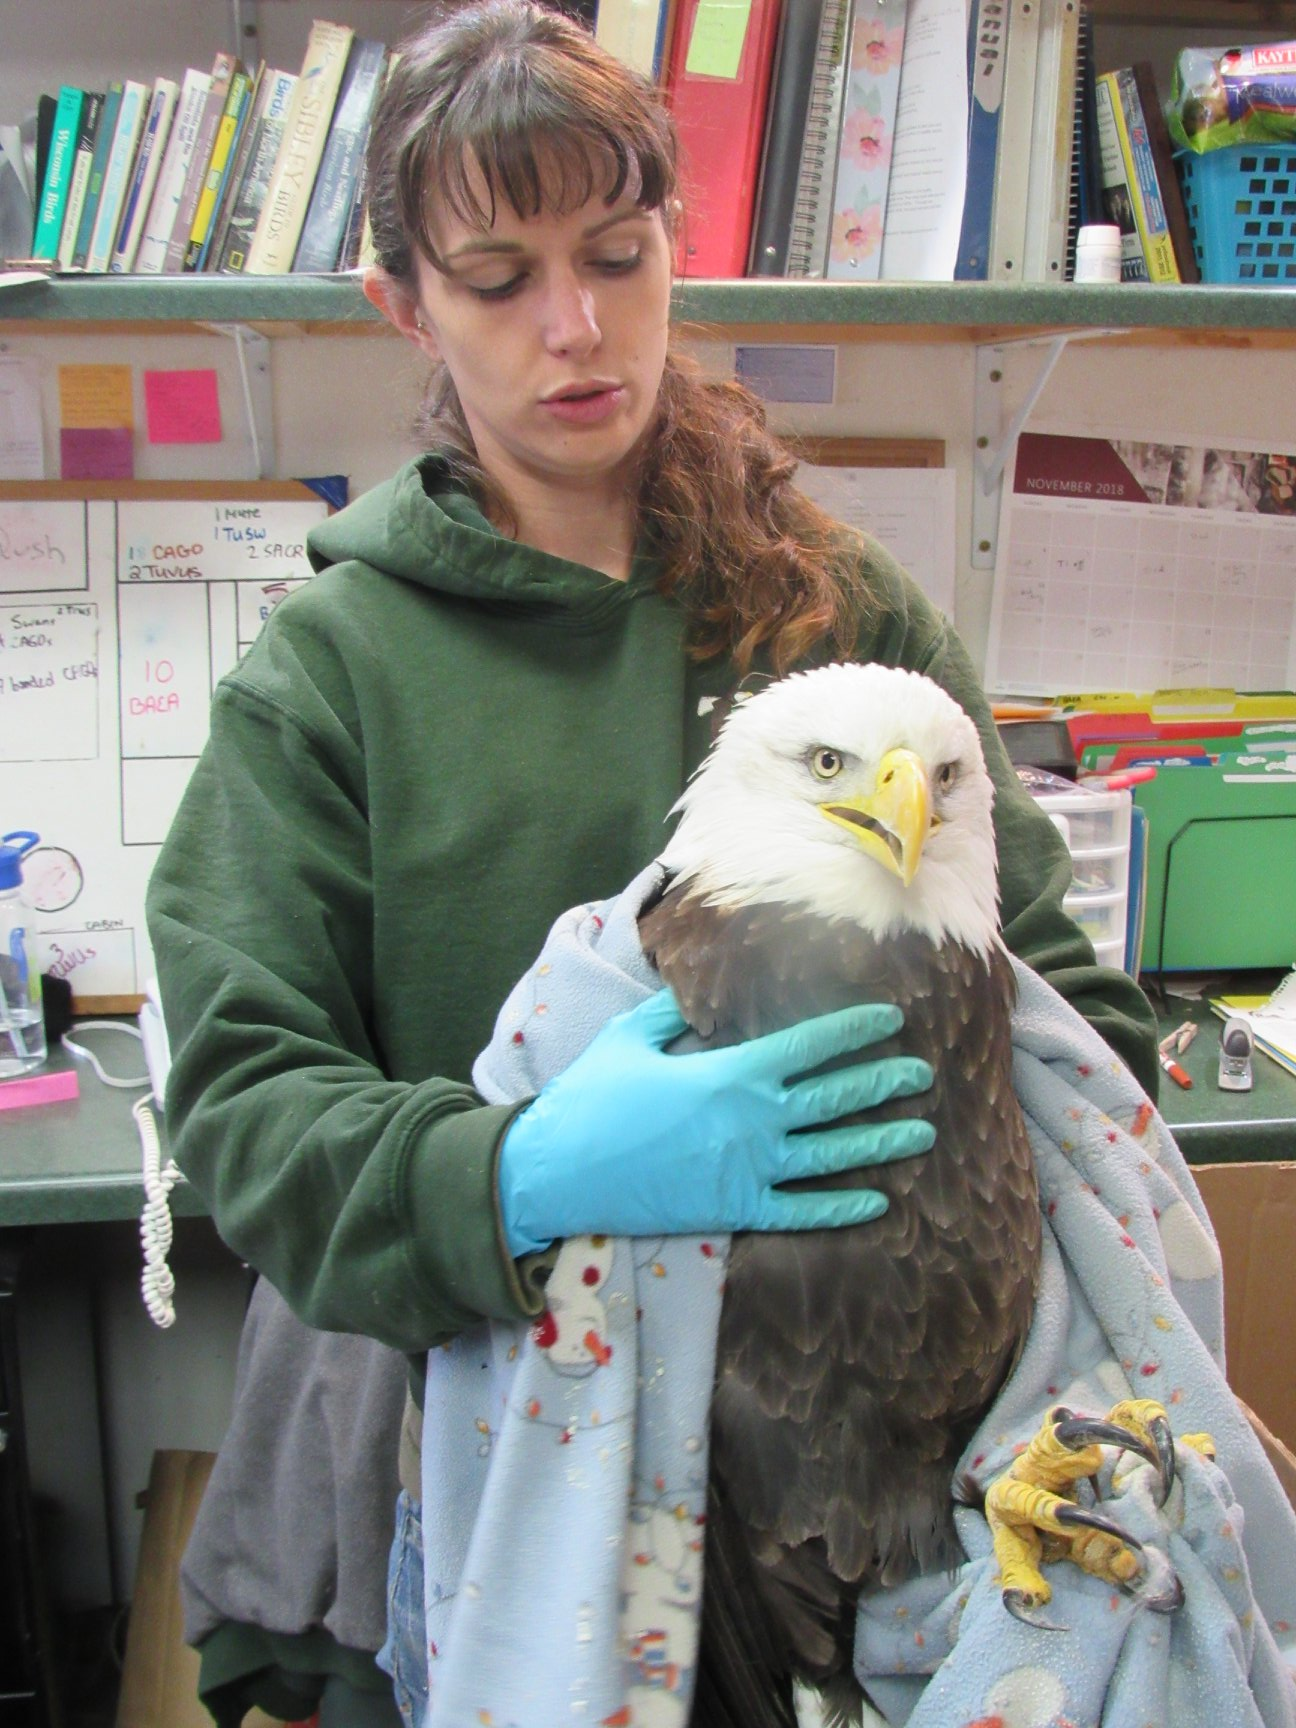 This is the lovely lady Bald Eagle from Keshena. She is improving but continues to have breathing problems.